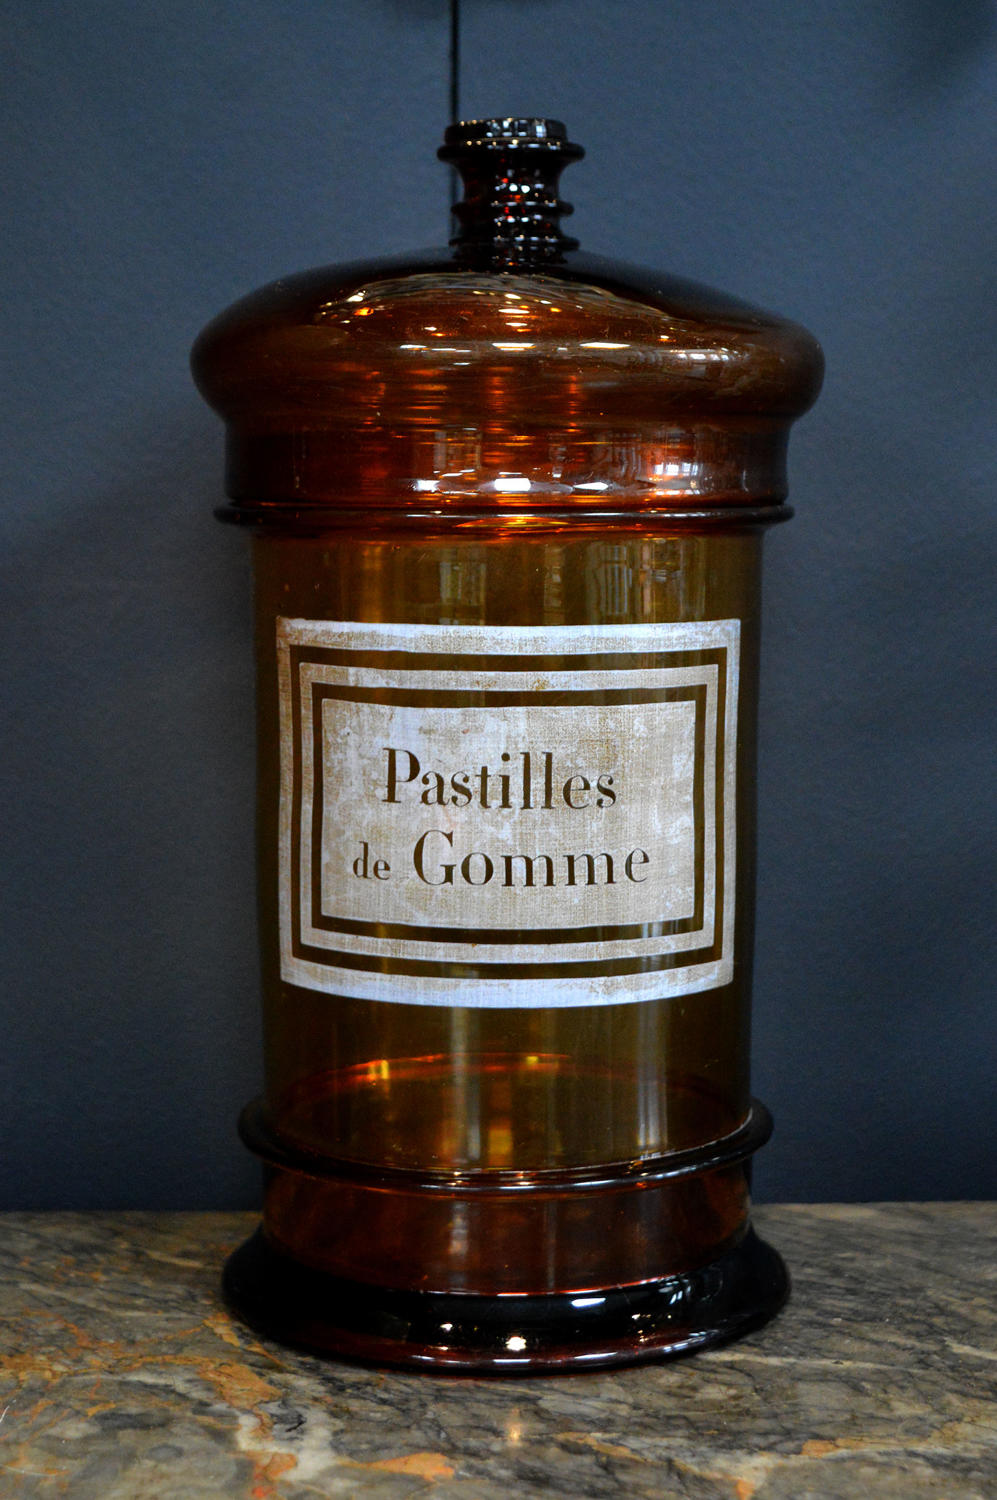 Mid 19th century French amber glass apothecary jar